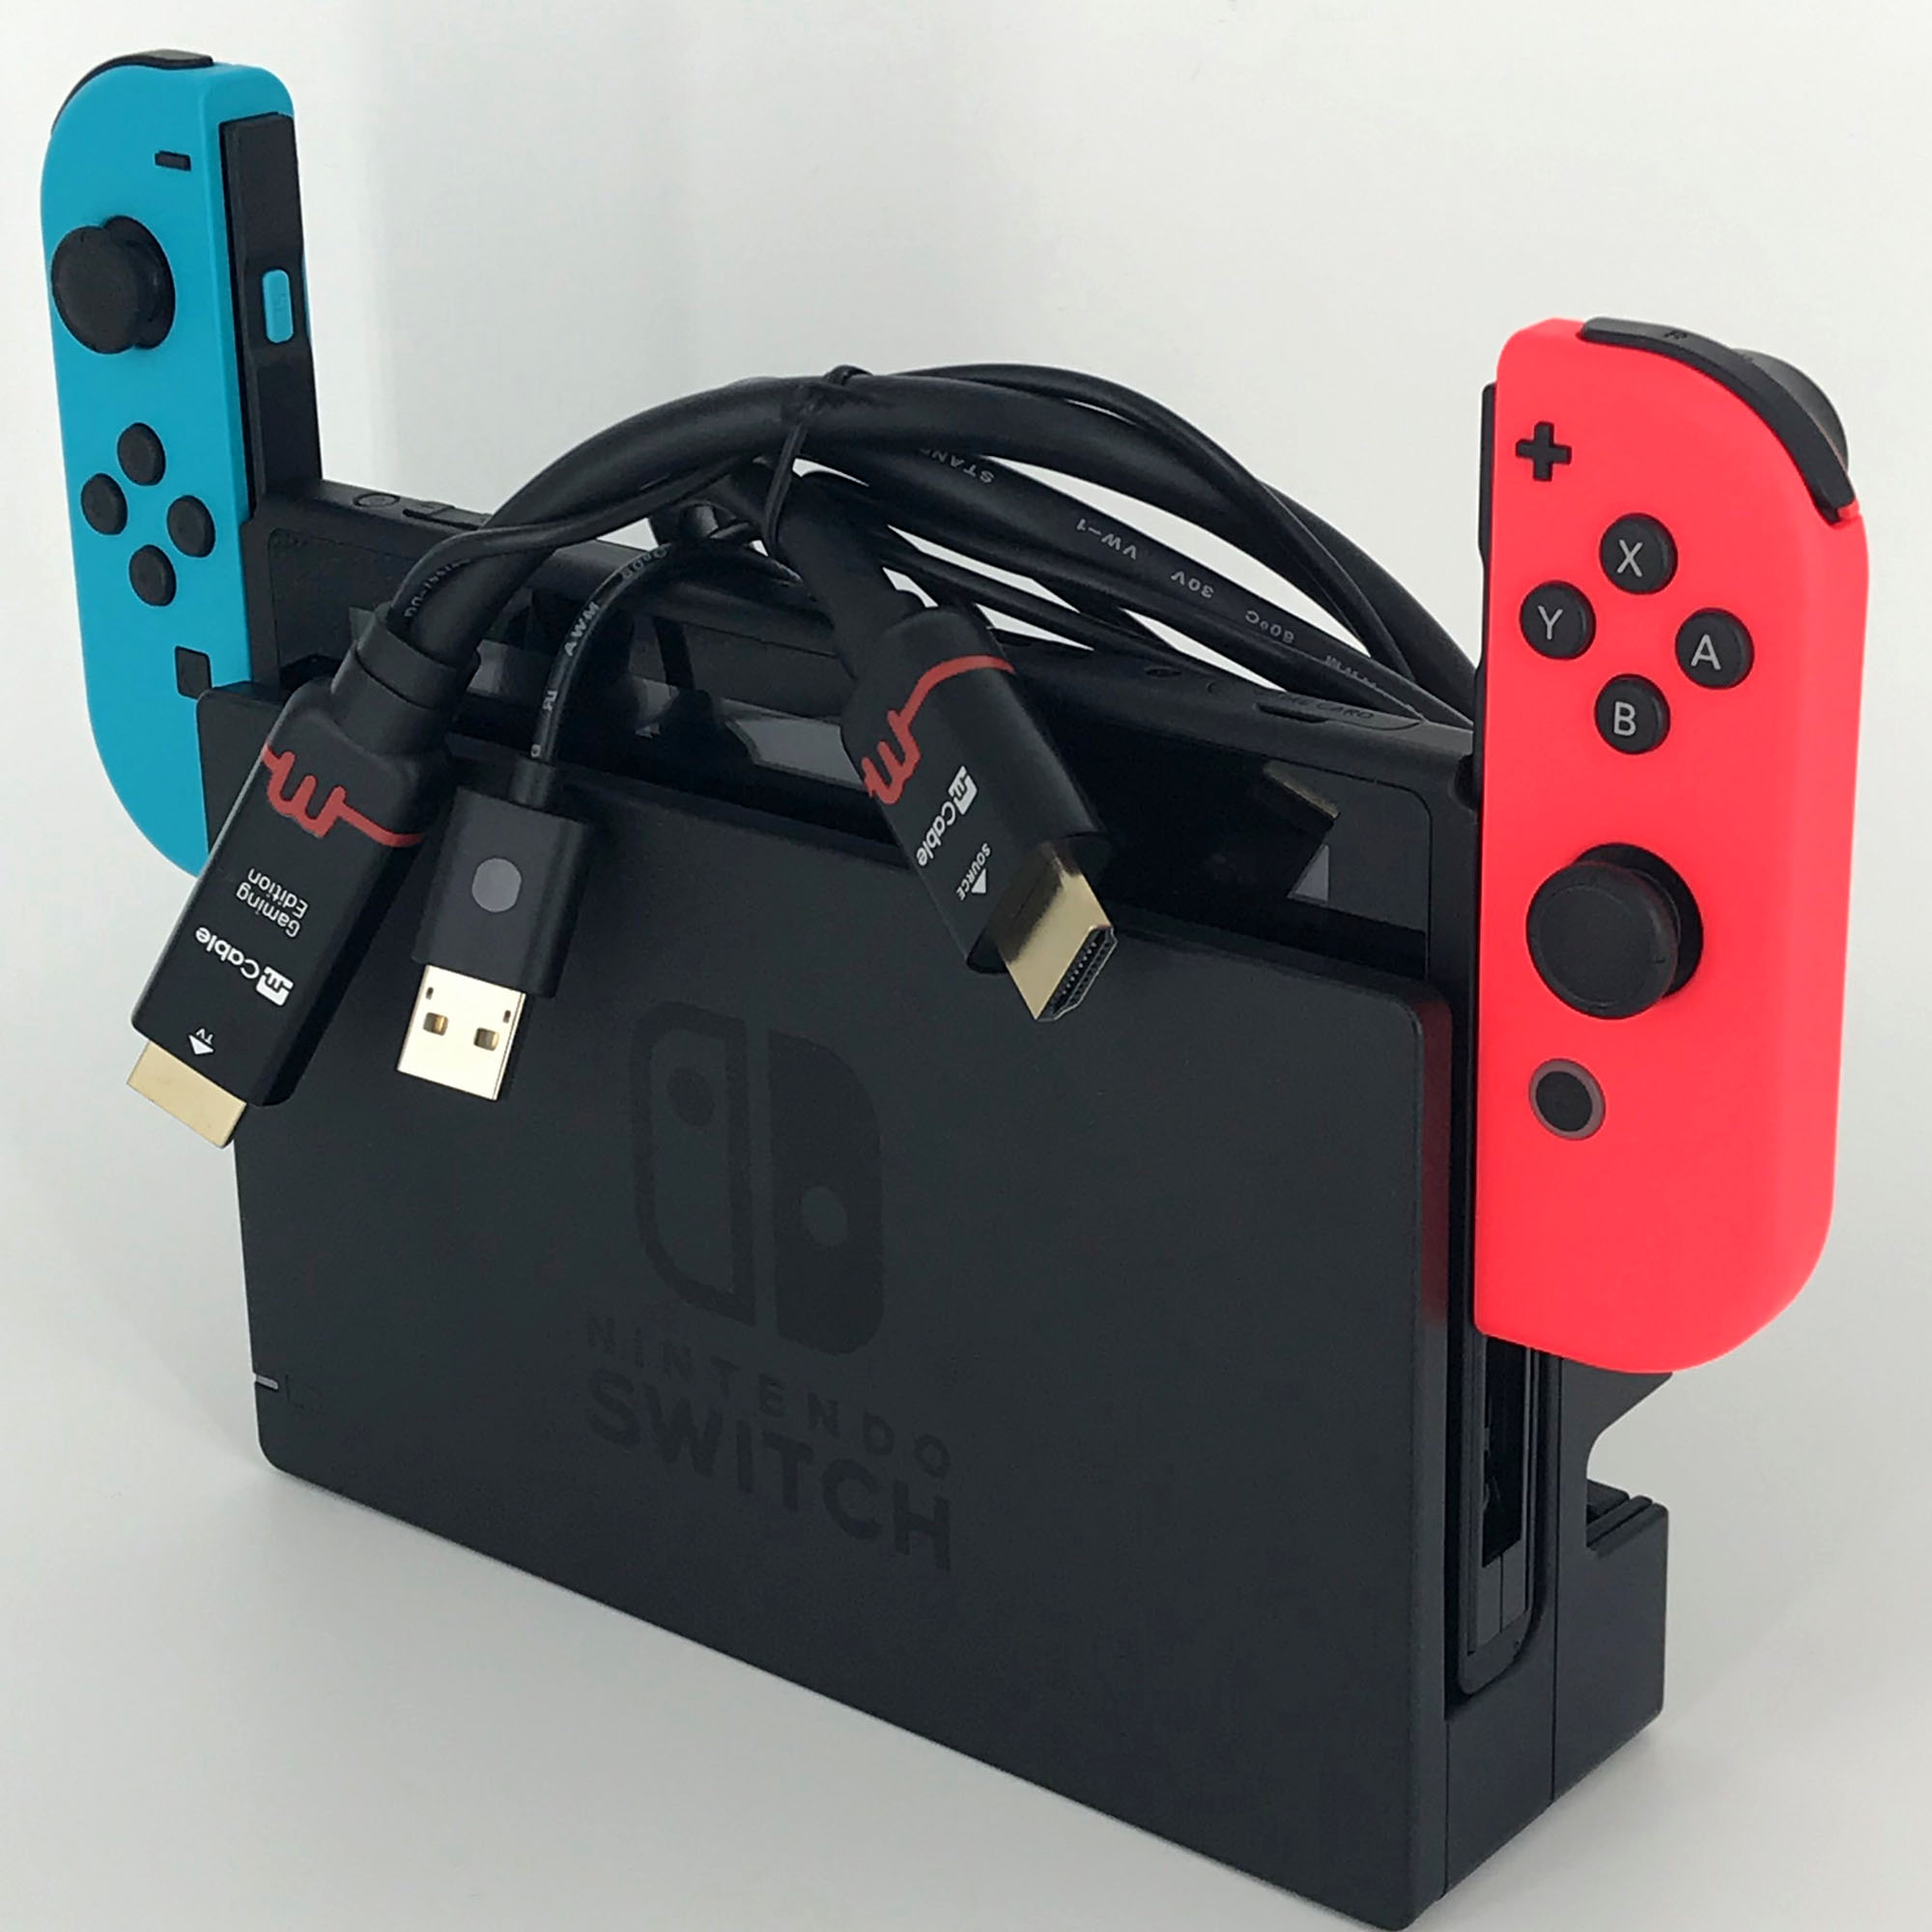 mcable picture with Nintendo Switch console.